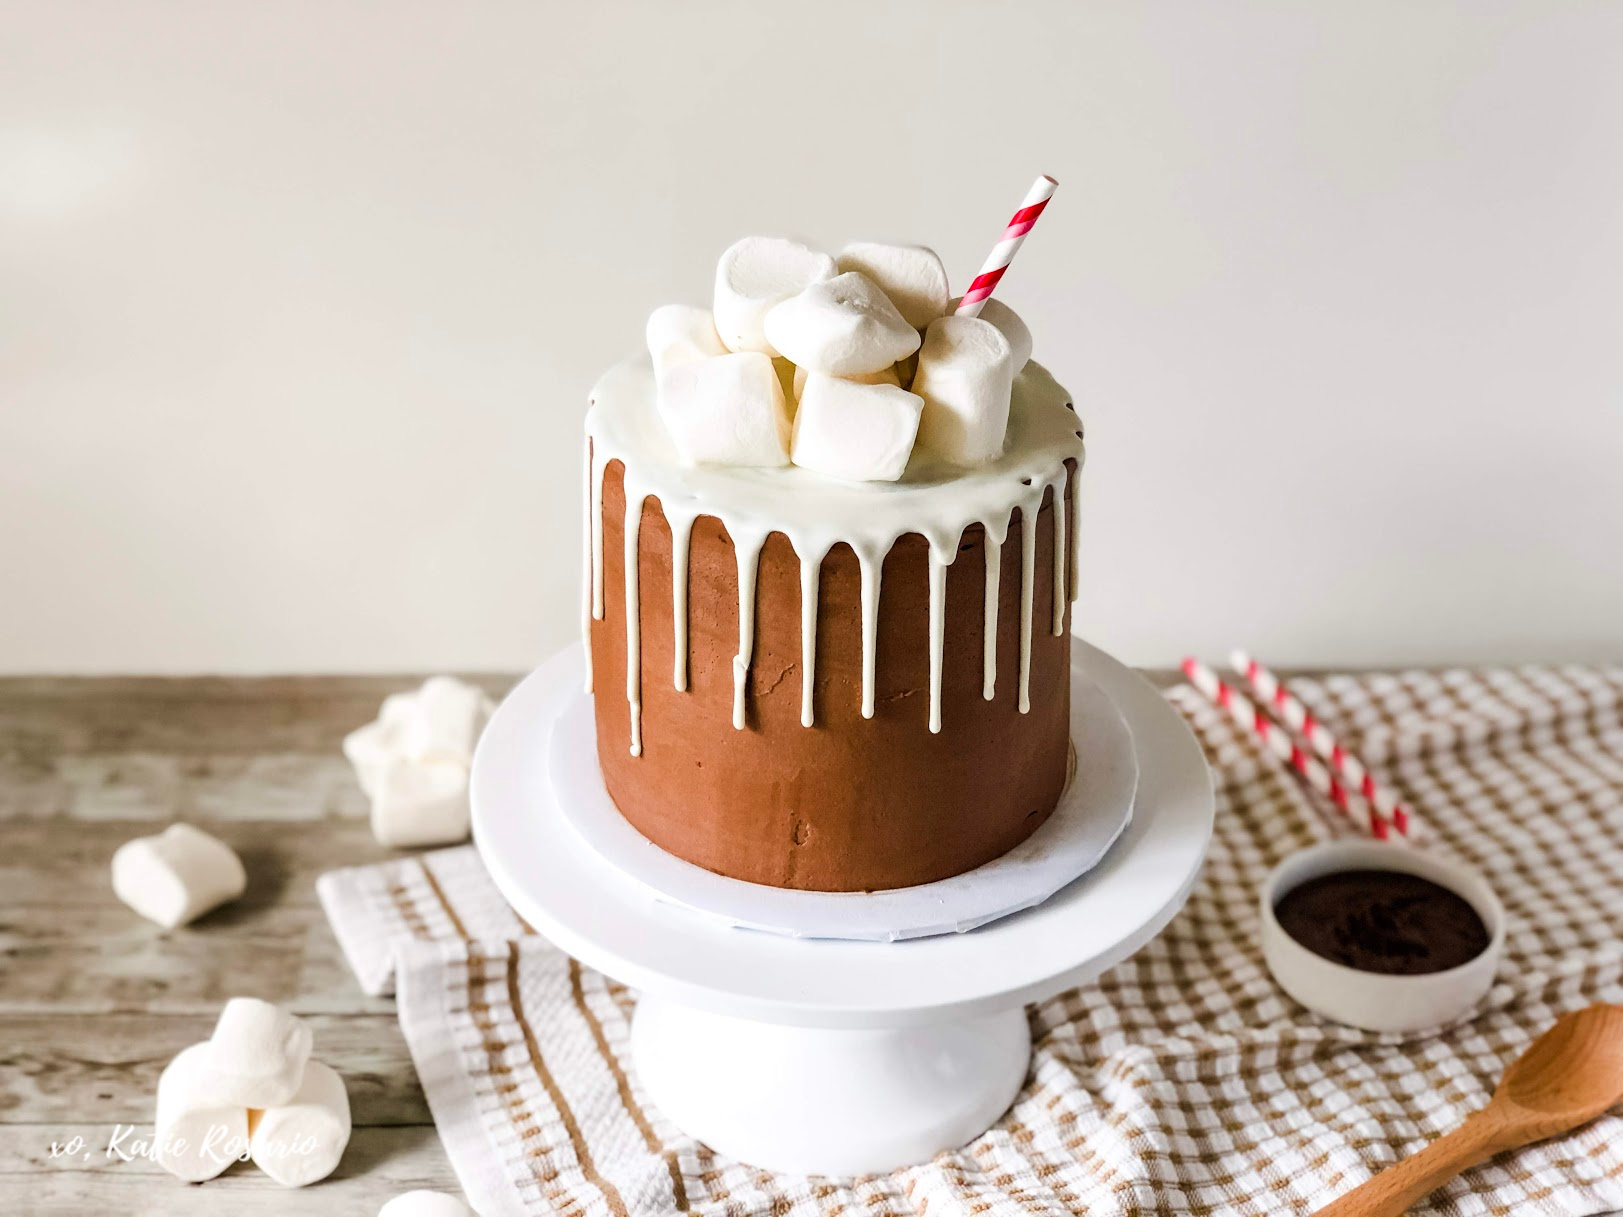 Looking for a tasty christmas cake this holiday season? The dark chocolate cake is light and fluffy and it's not too sweet which makes for the perfect balance with the nutella buttercream and marshmallow fluff. With all these ingredients, layered together this rich and decadent cake tastes just like a cup of hot chocolate. Serve your holiday guests a piece of this cake with a nicely lit fire for the perfect winter night! #xokatierosario #nutellacakerecipe #hotchocolatecake #christmascakeideas